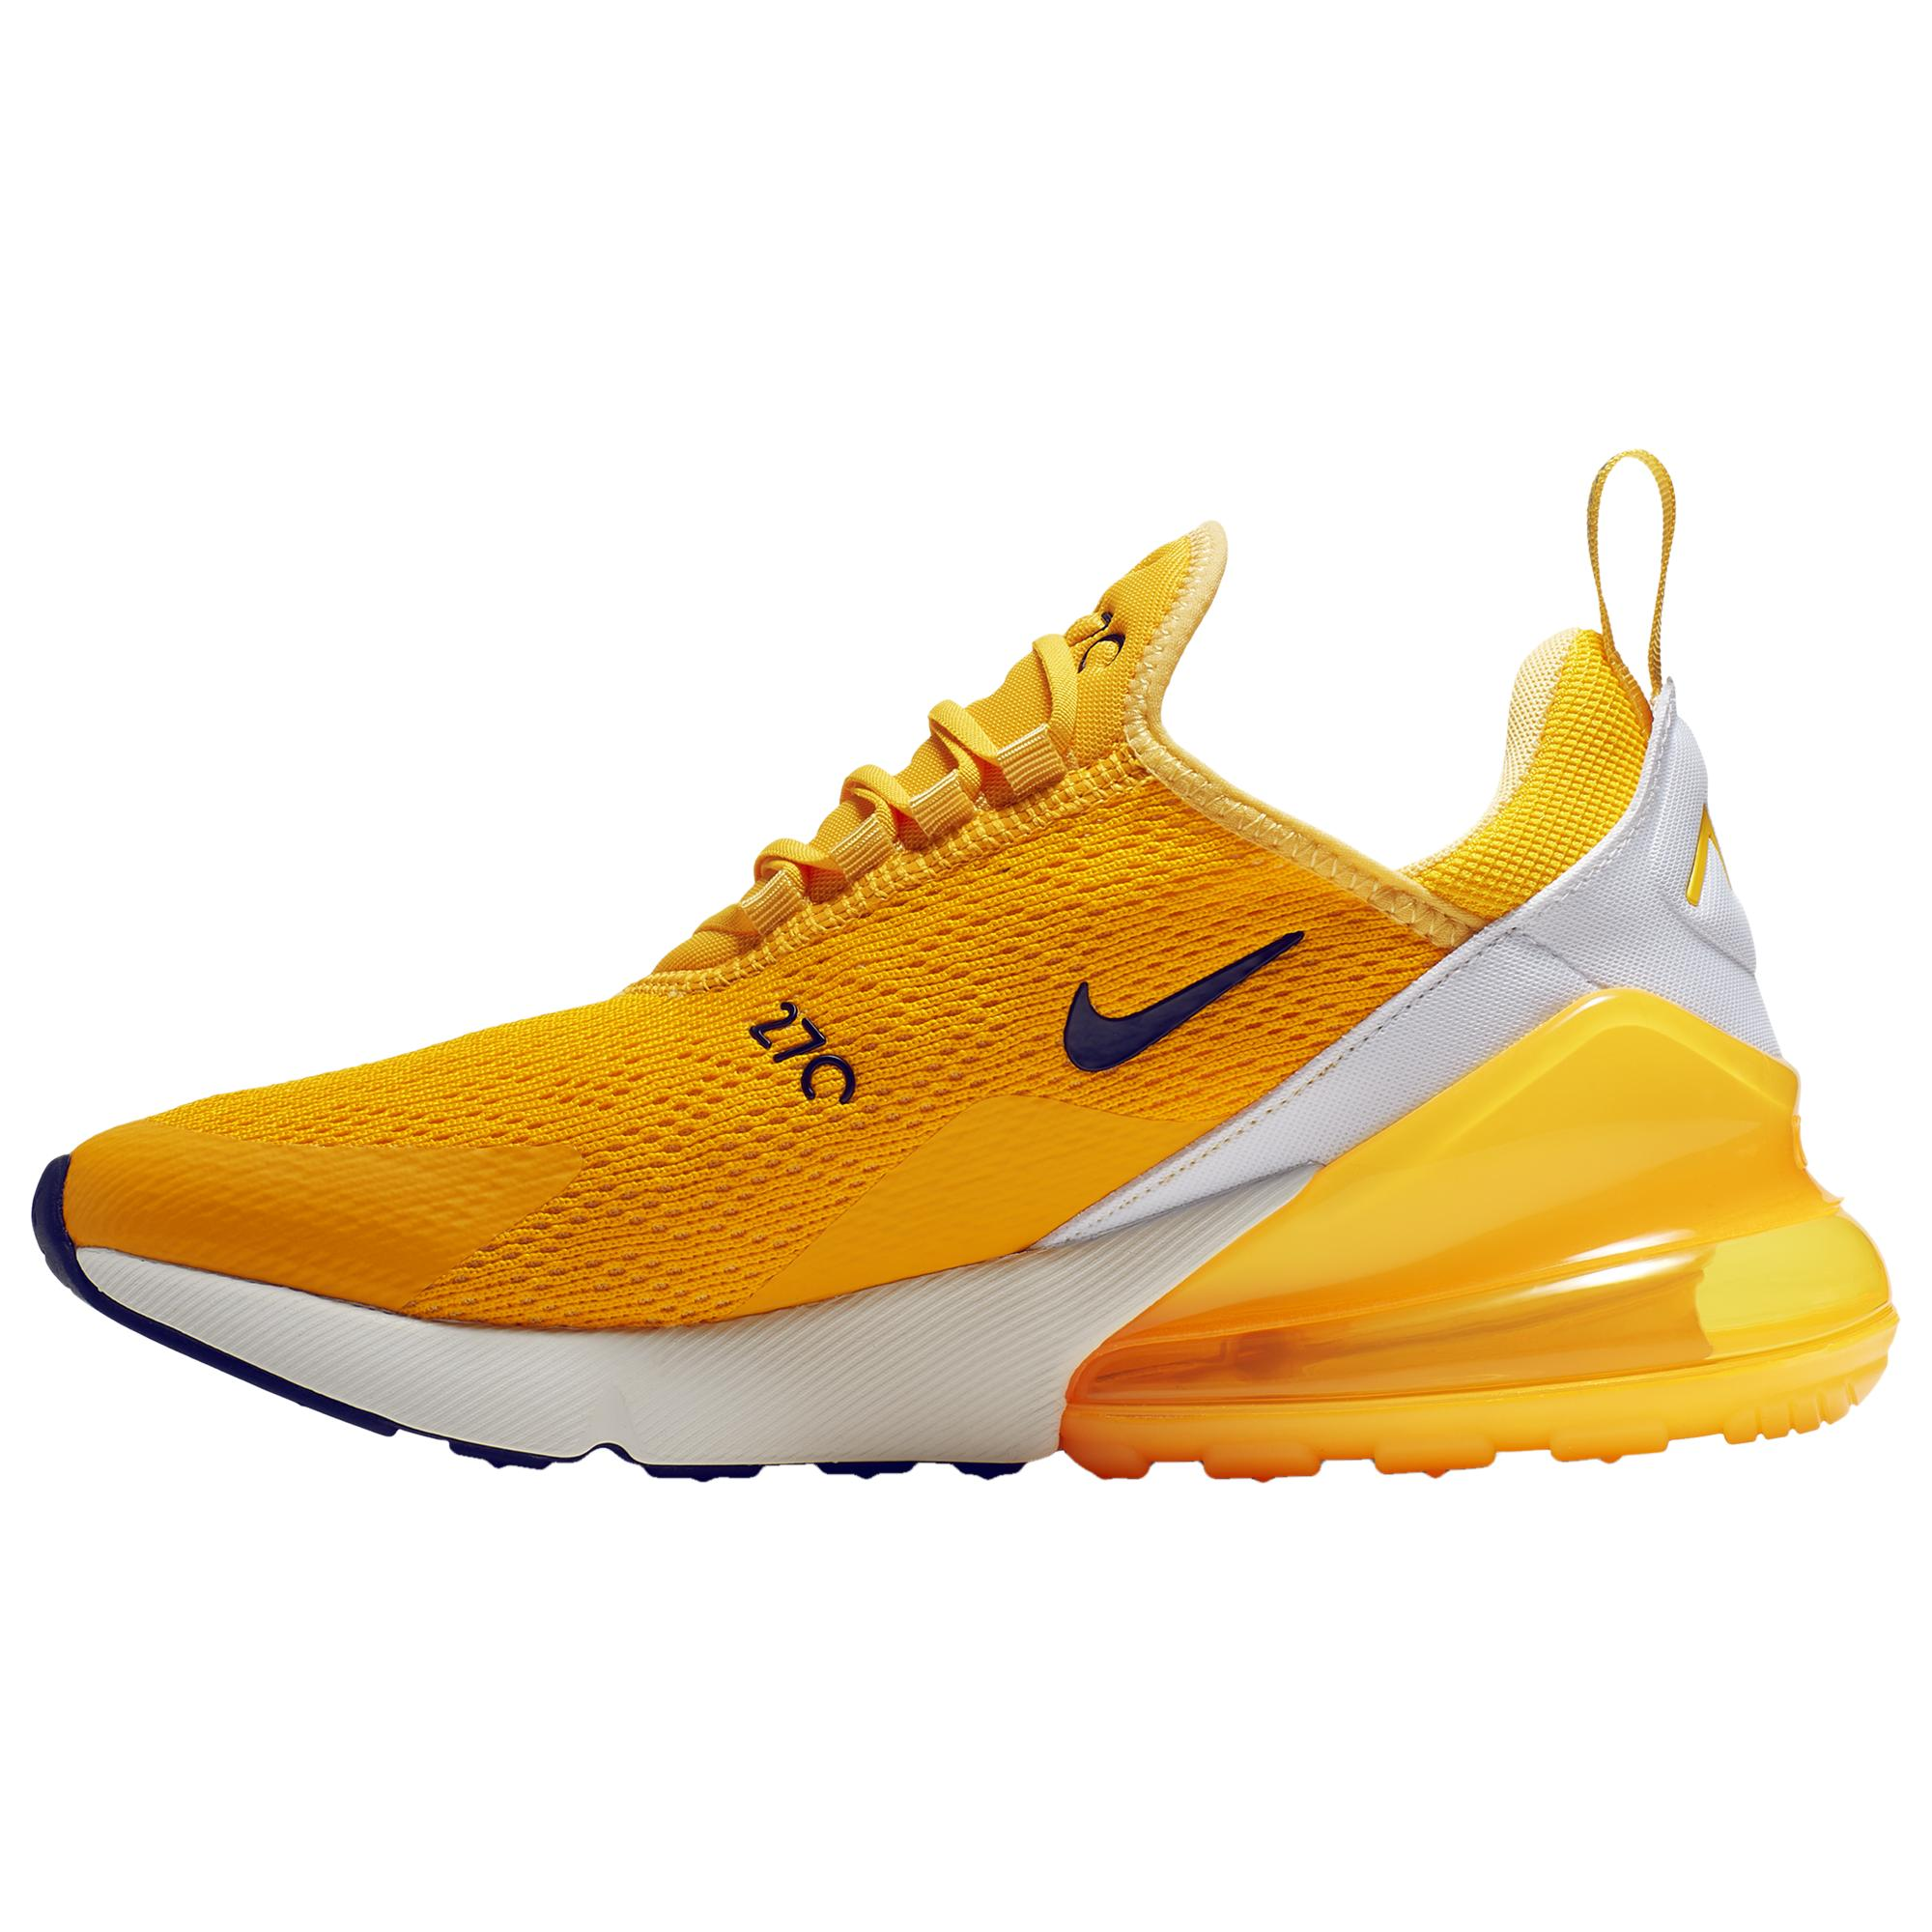 Purchase \u003e nike 270 yellow, Up to 65% OFF